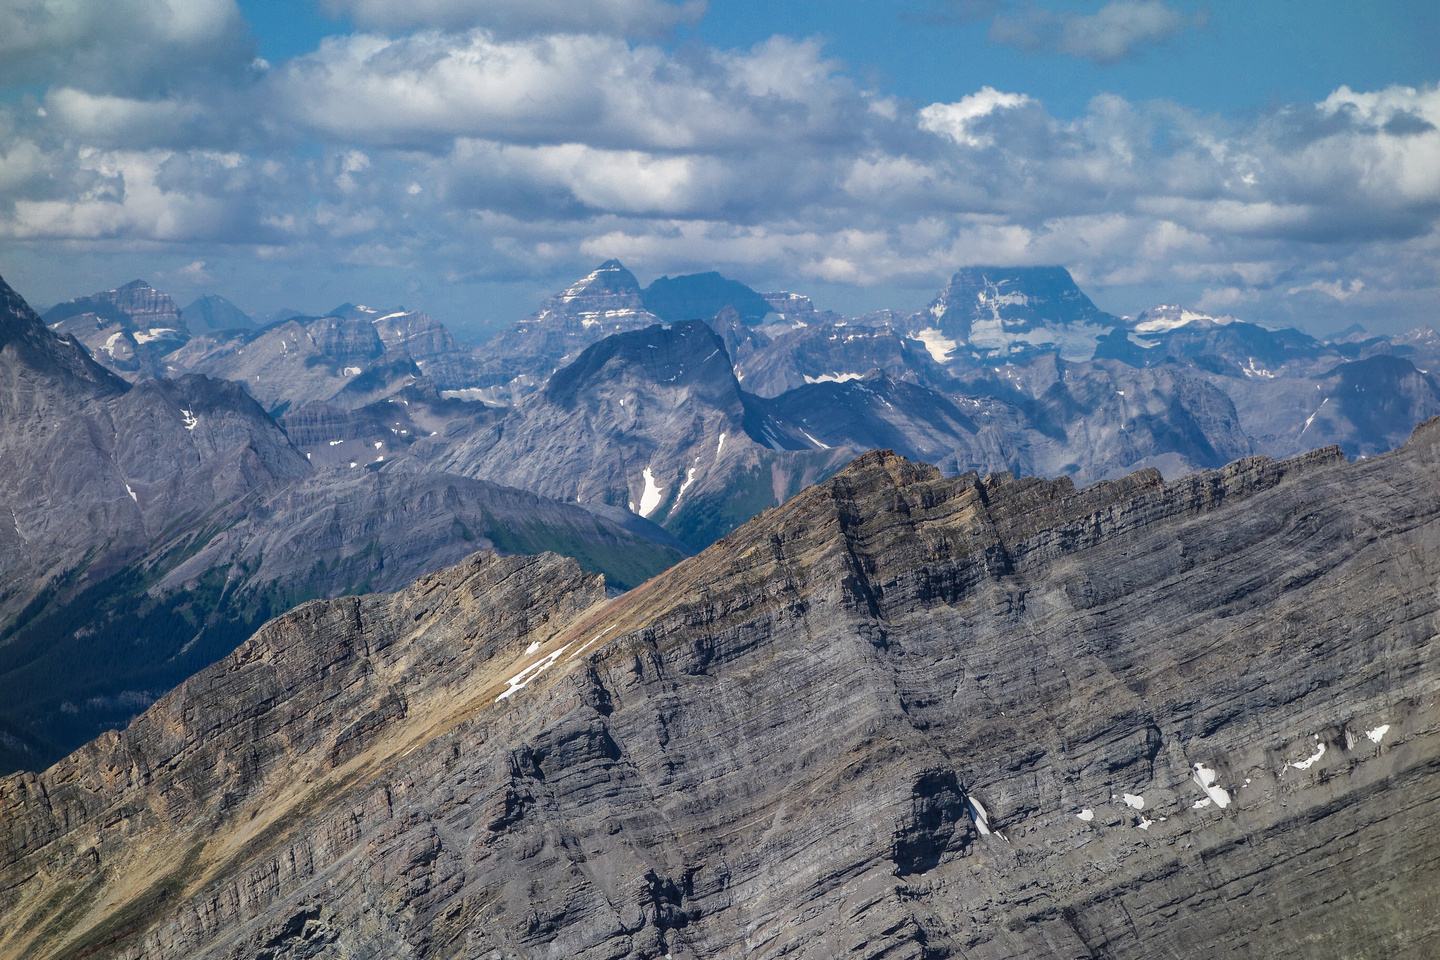 Mount Assiniboine makes a partial appearance with Eon and Aye to its left and Smuts in the foreground at center.